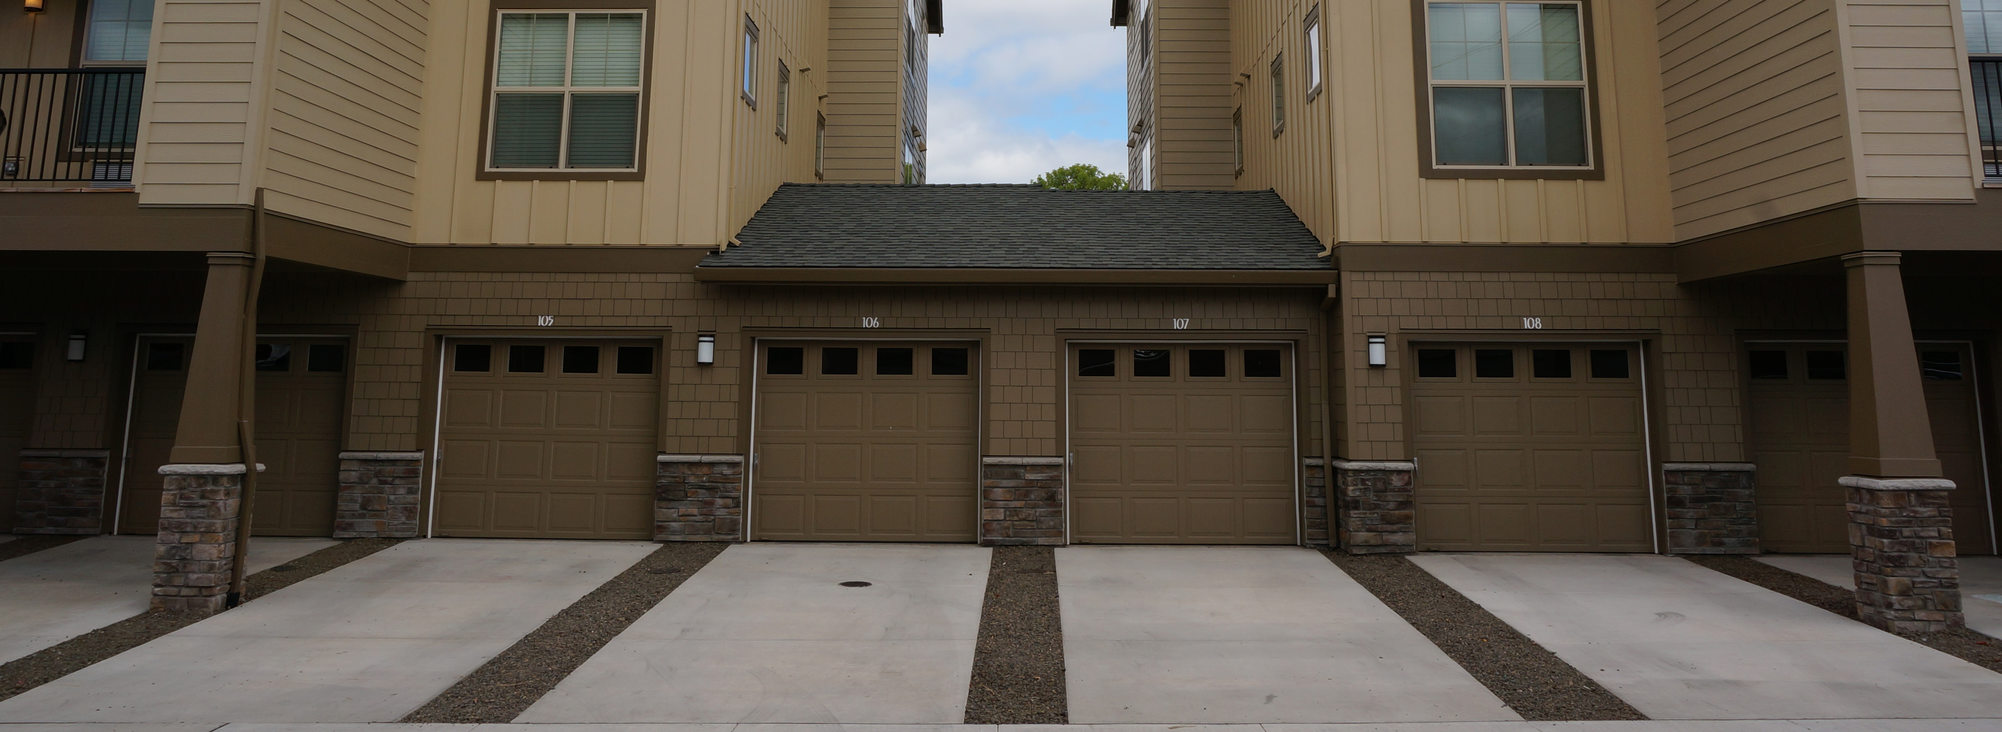 View of garages on new attached housing development